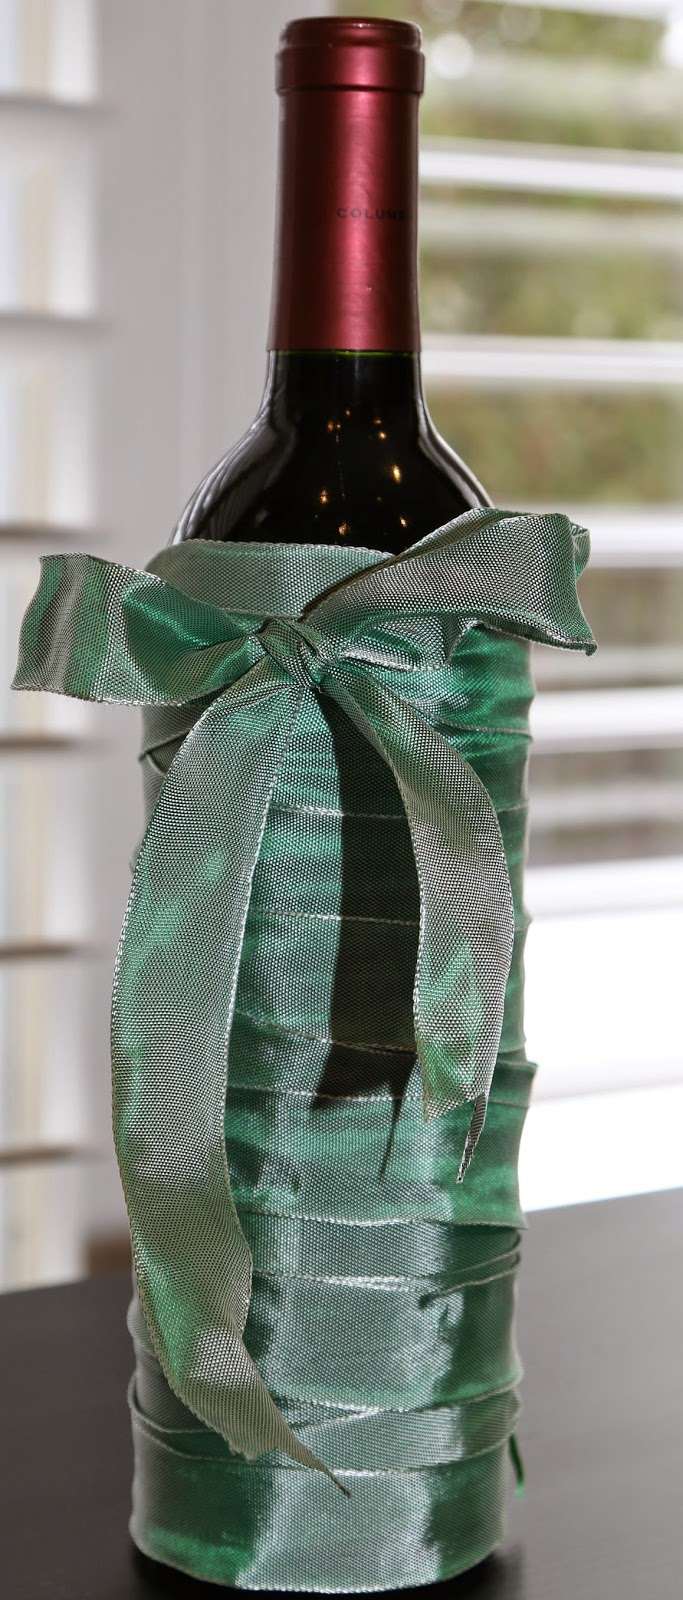 Ribbon Wine Bottle Wrapping Image